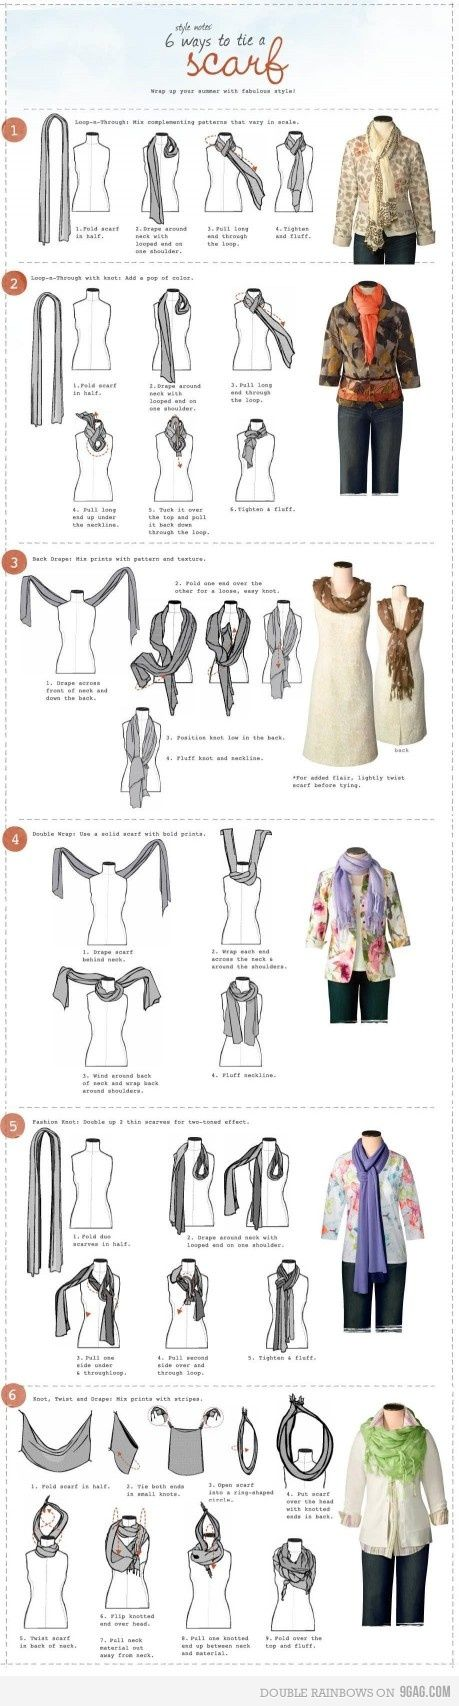 How to tie a scarf                                                                                                                                                                                 More